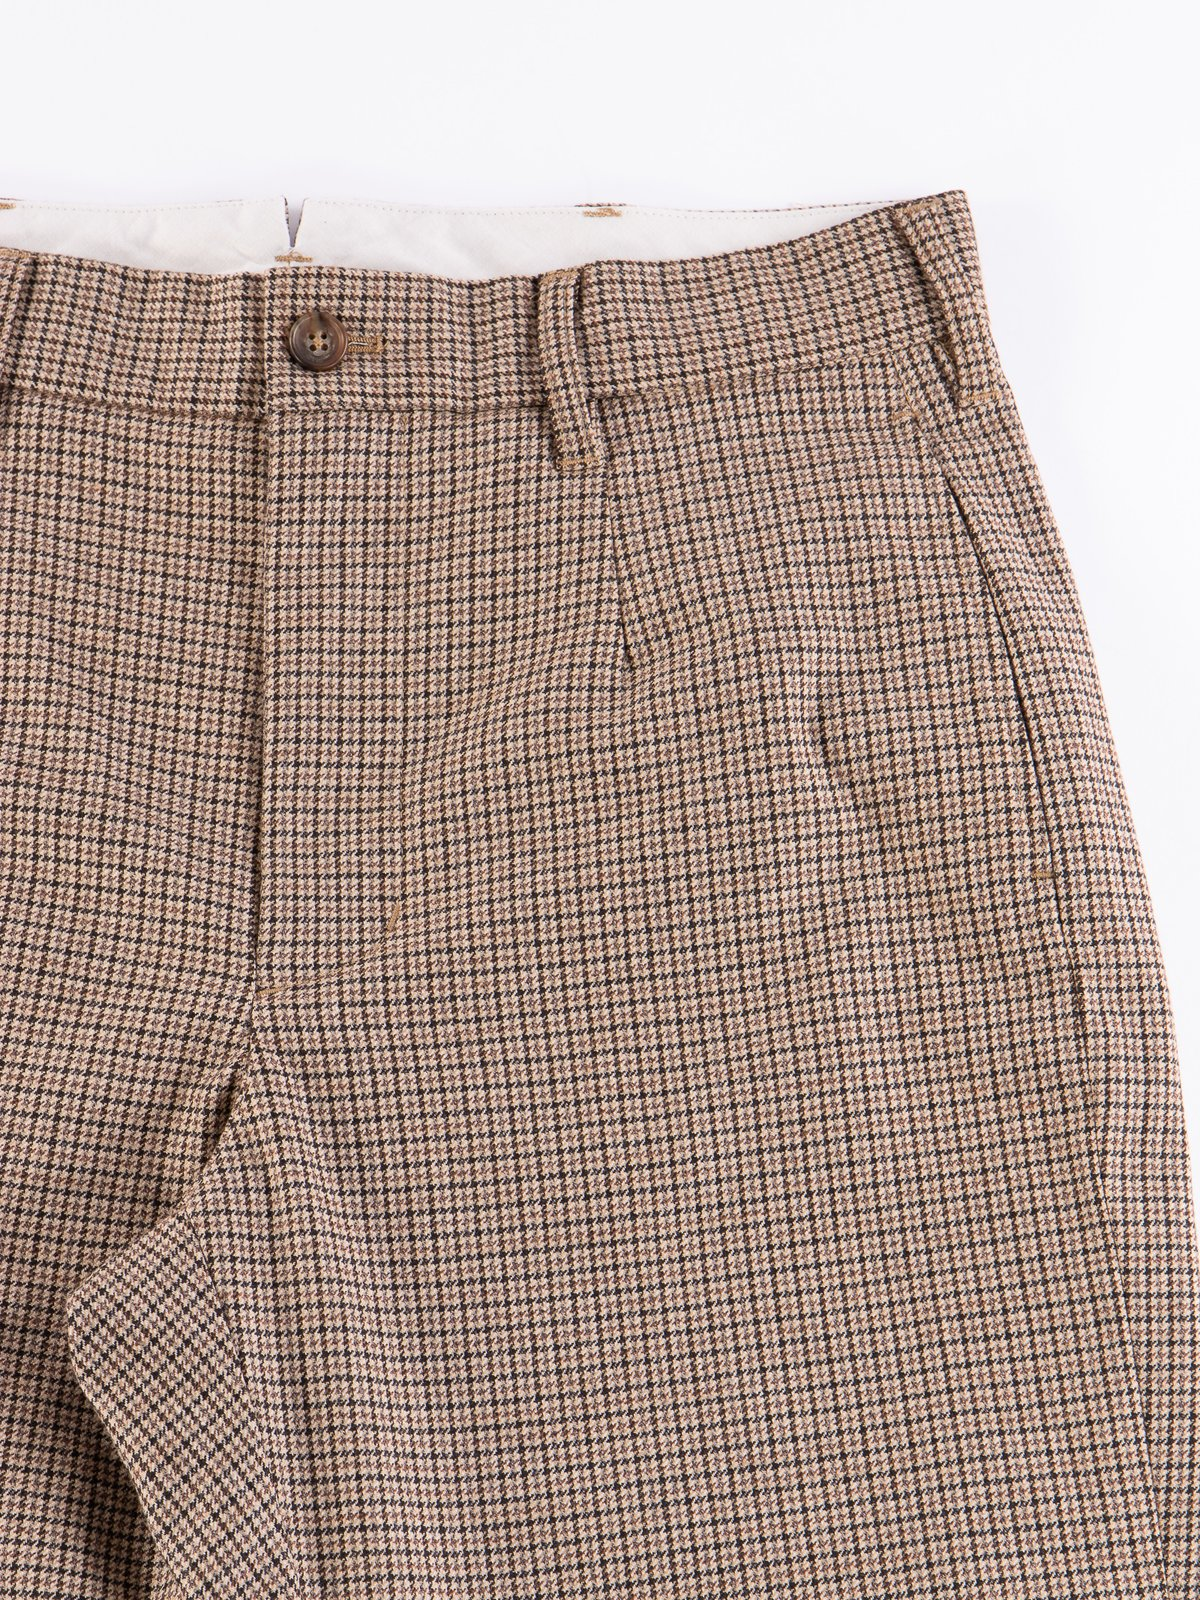 Brown Wool Poly Gunclub Check Andover Pant - Image 4